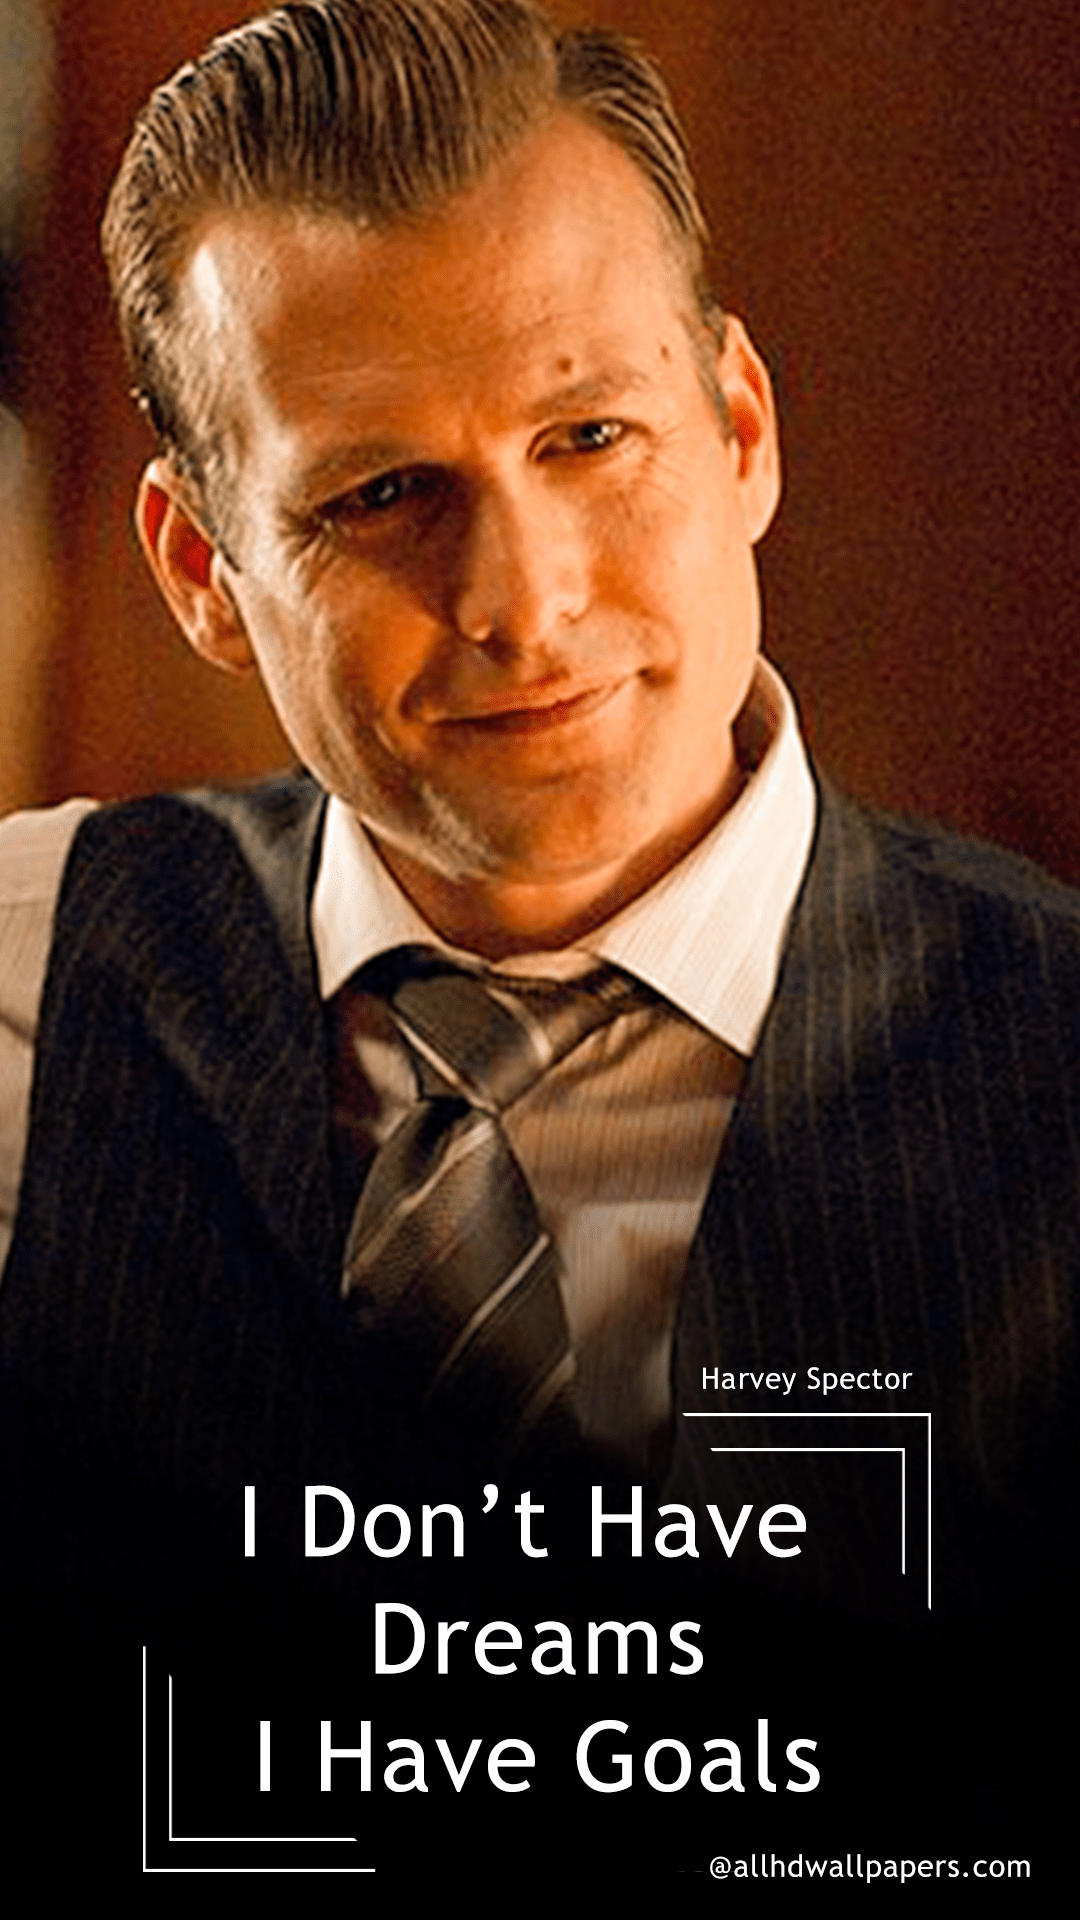 Hard Work Quotes Wallpapers Hd 11 Harvey Specter Quotes Will Inspire You To Work Hard